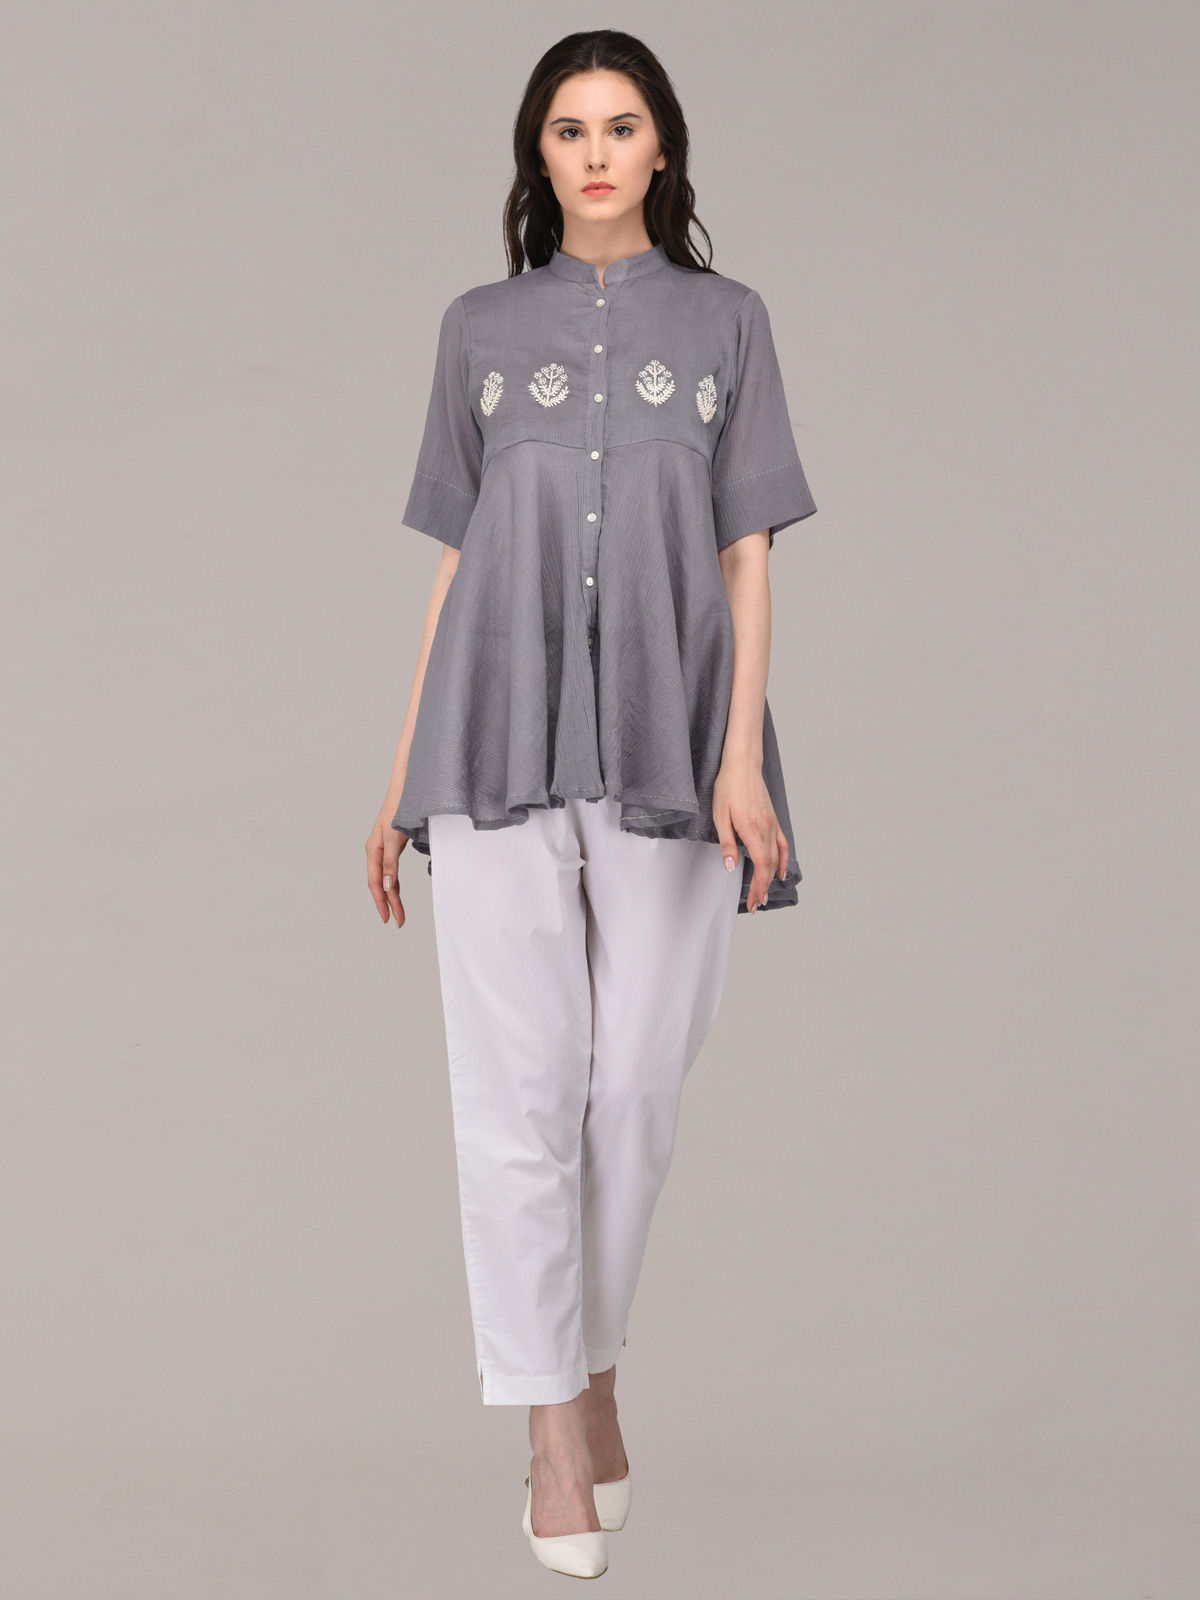 Panachee hand embroidered grey pure cotton top